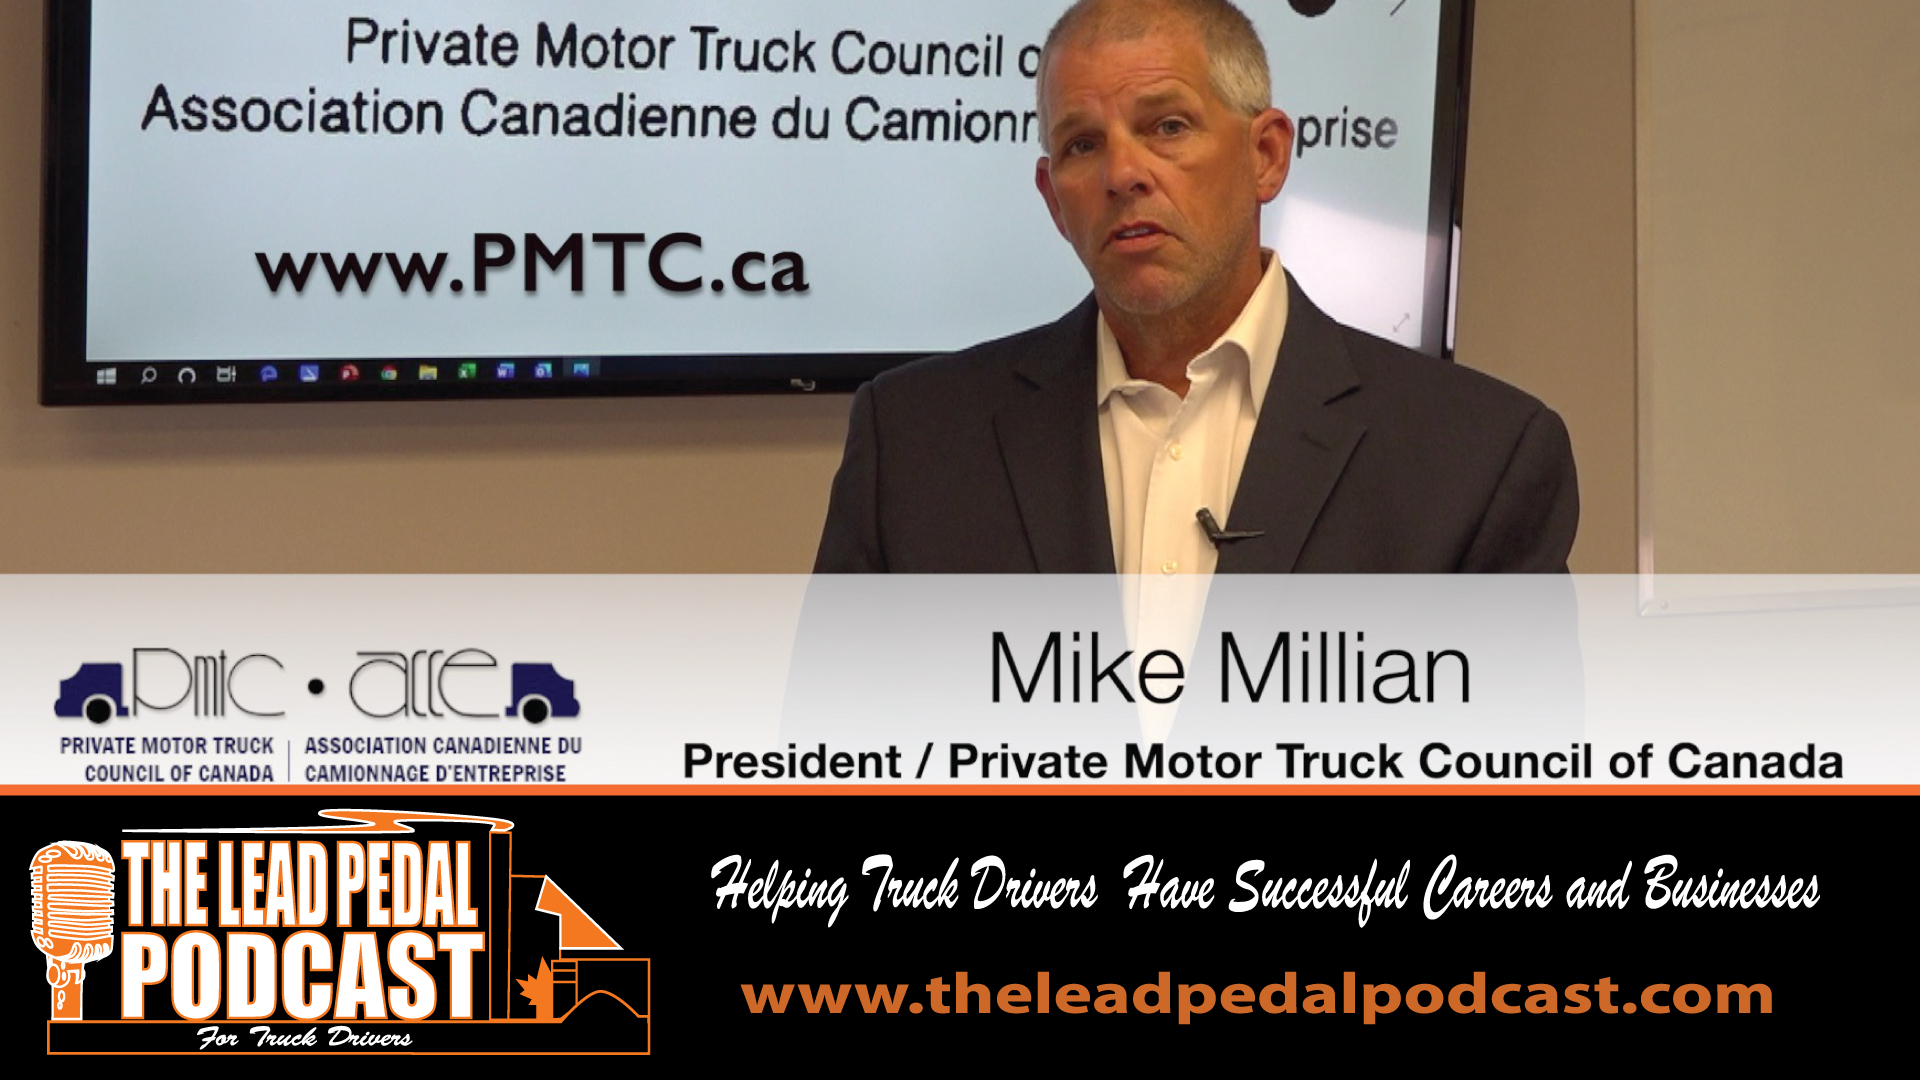 LP638 ELDs, Private Fleets, and More with Mike Millian of PMTC